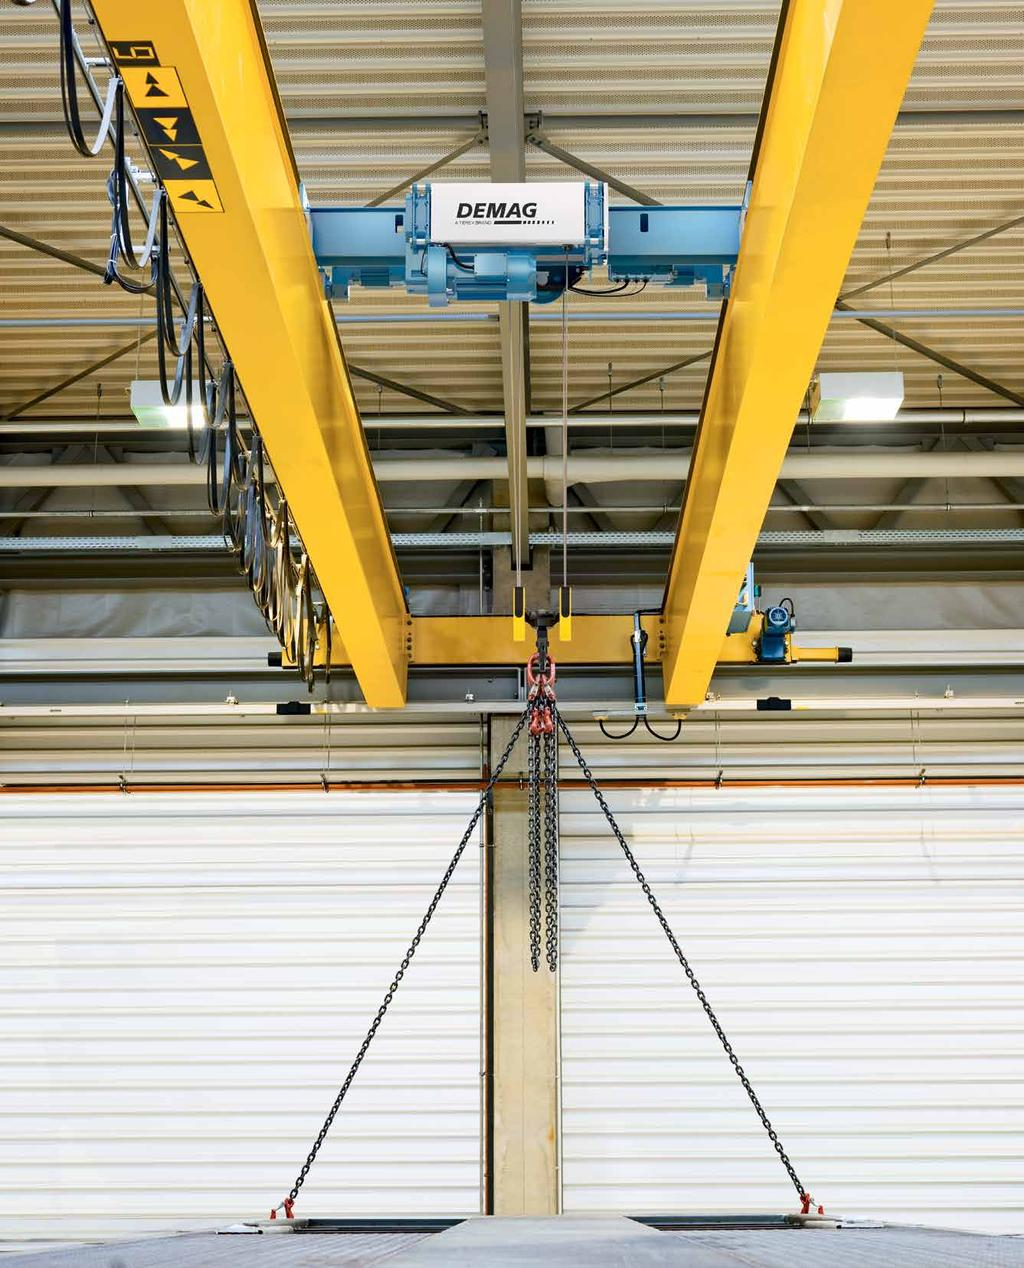 EK-DMR low-headroom monorail hoist C-design for compact overall 41474 41468 41467 dimensions and reduced